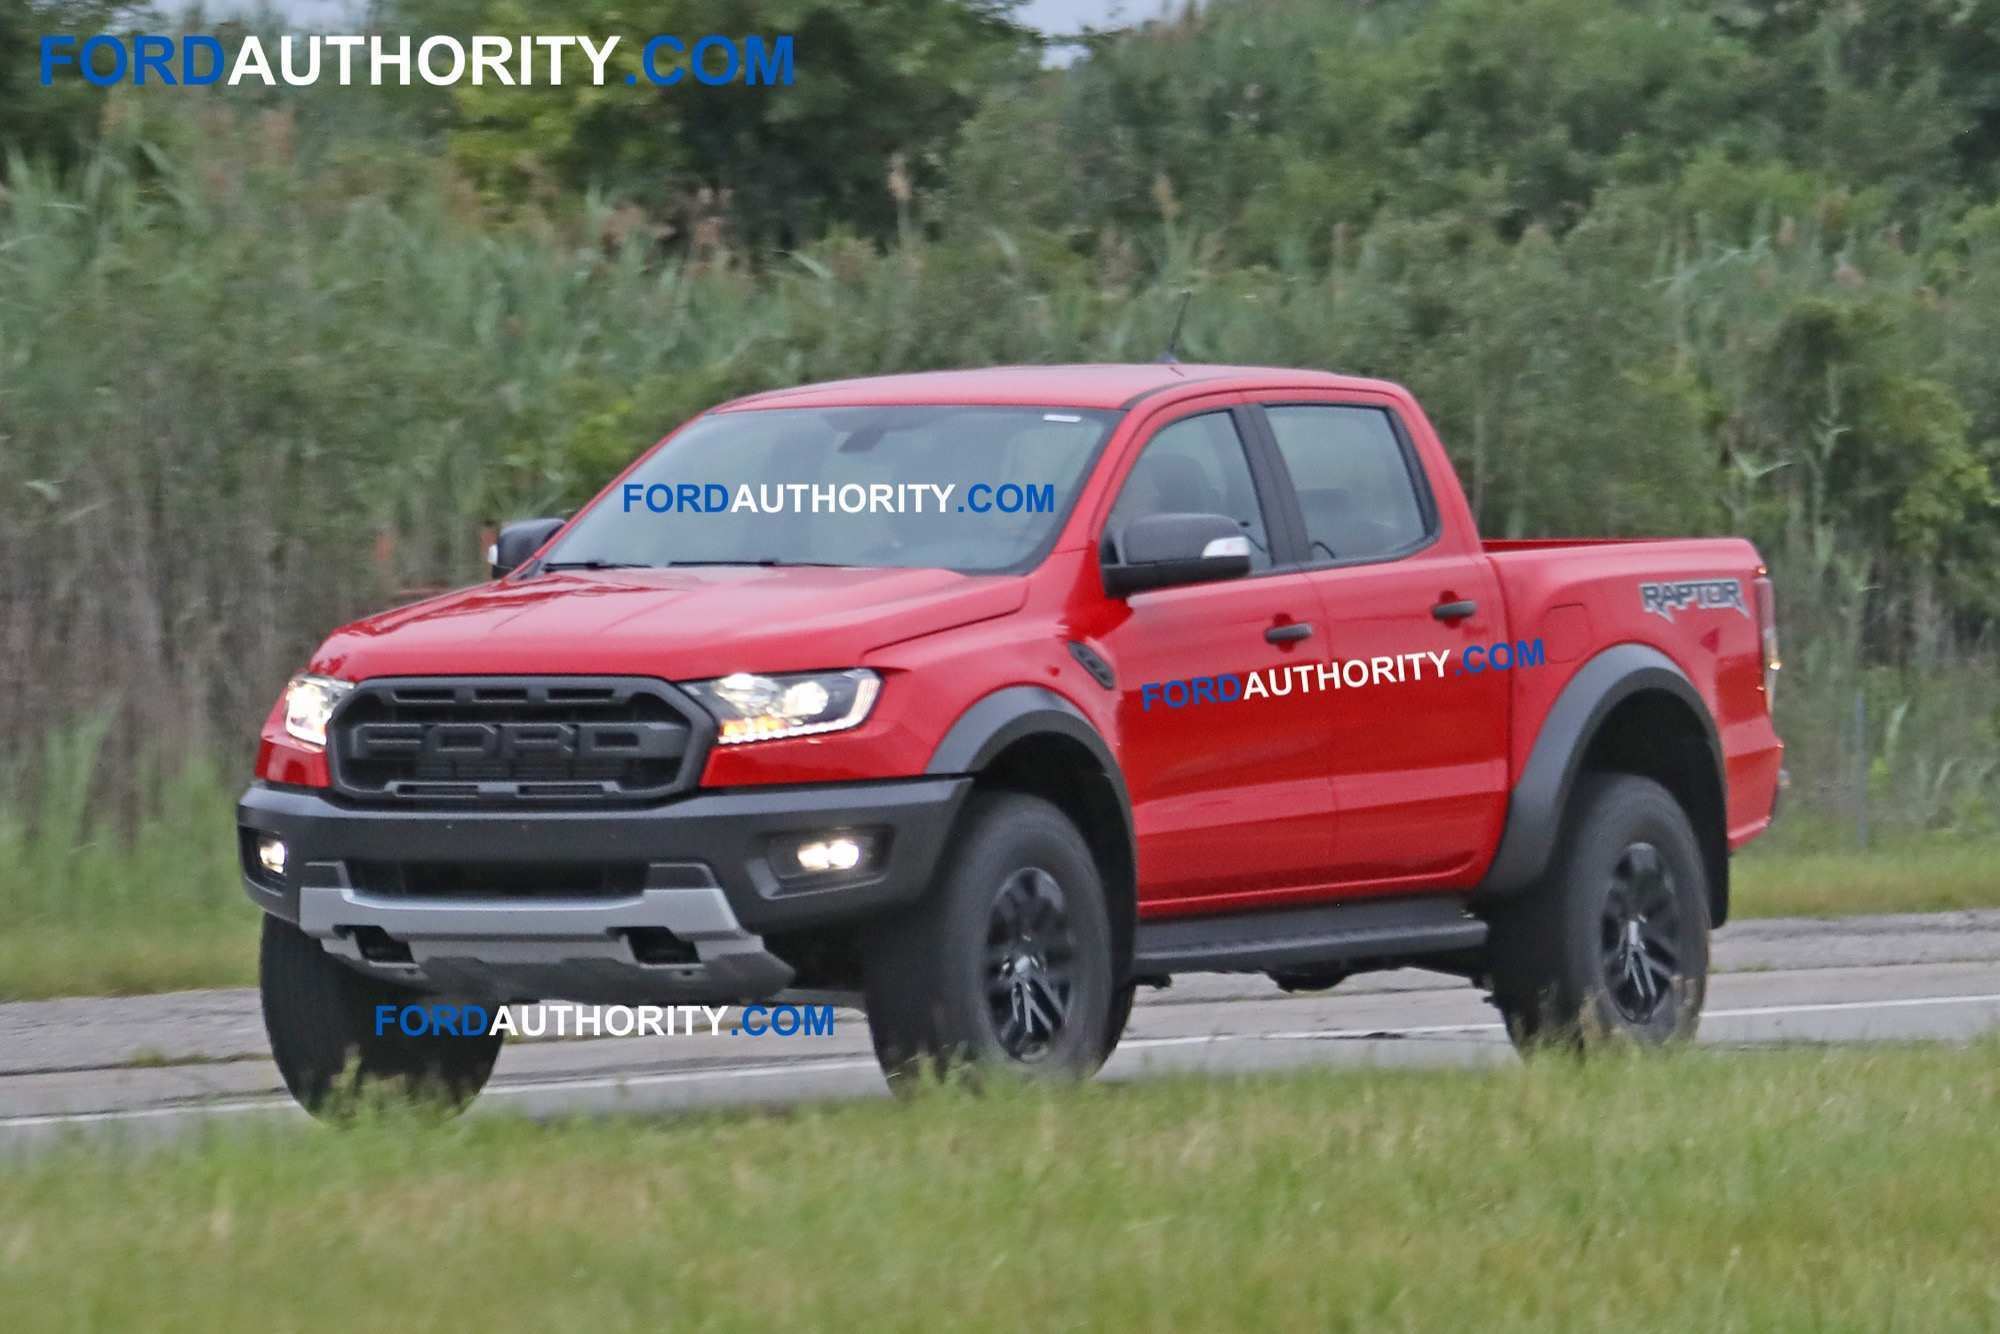 99 All New 2019 Ford Ranger 2 Door Release Date with 2019 Ford Ranger 2 Door